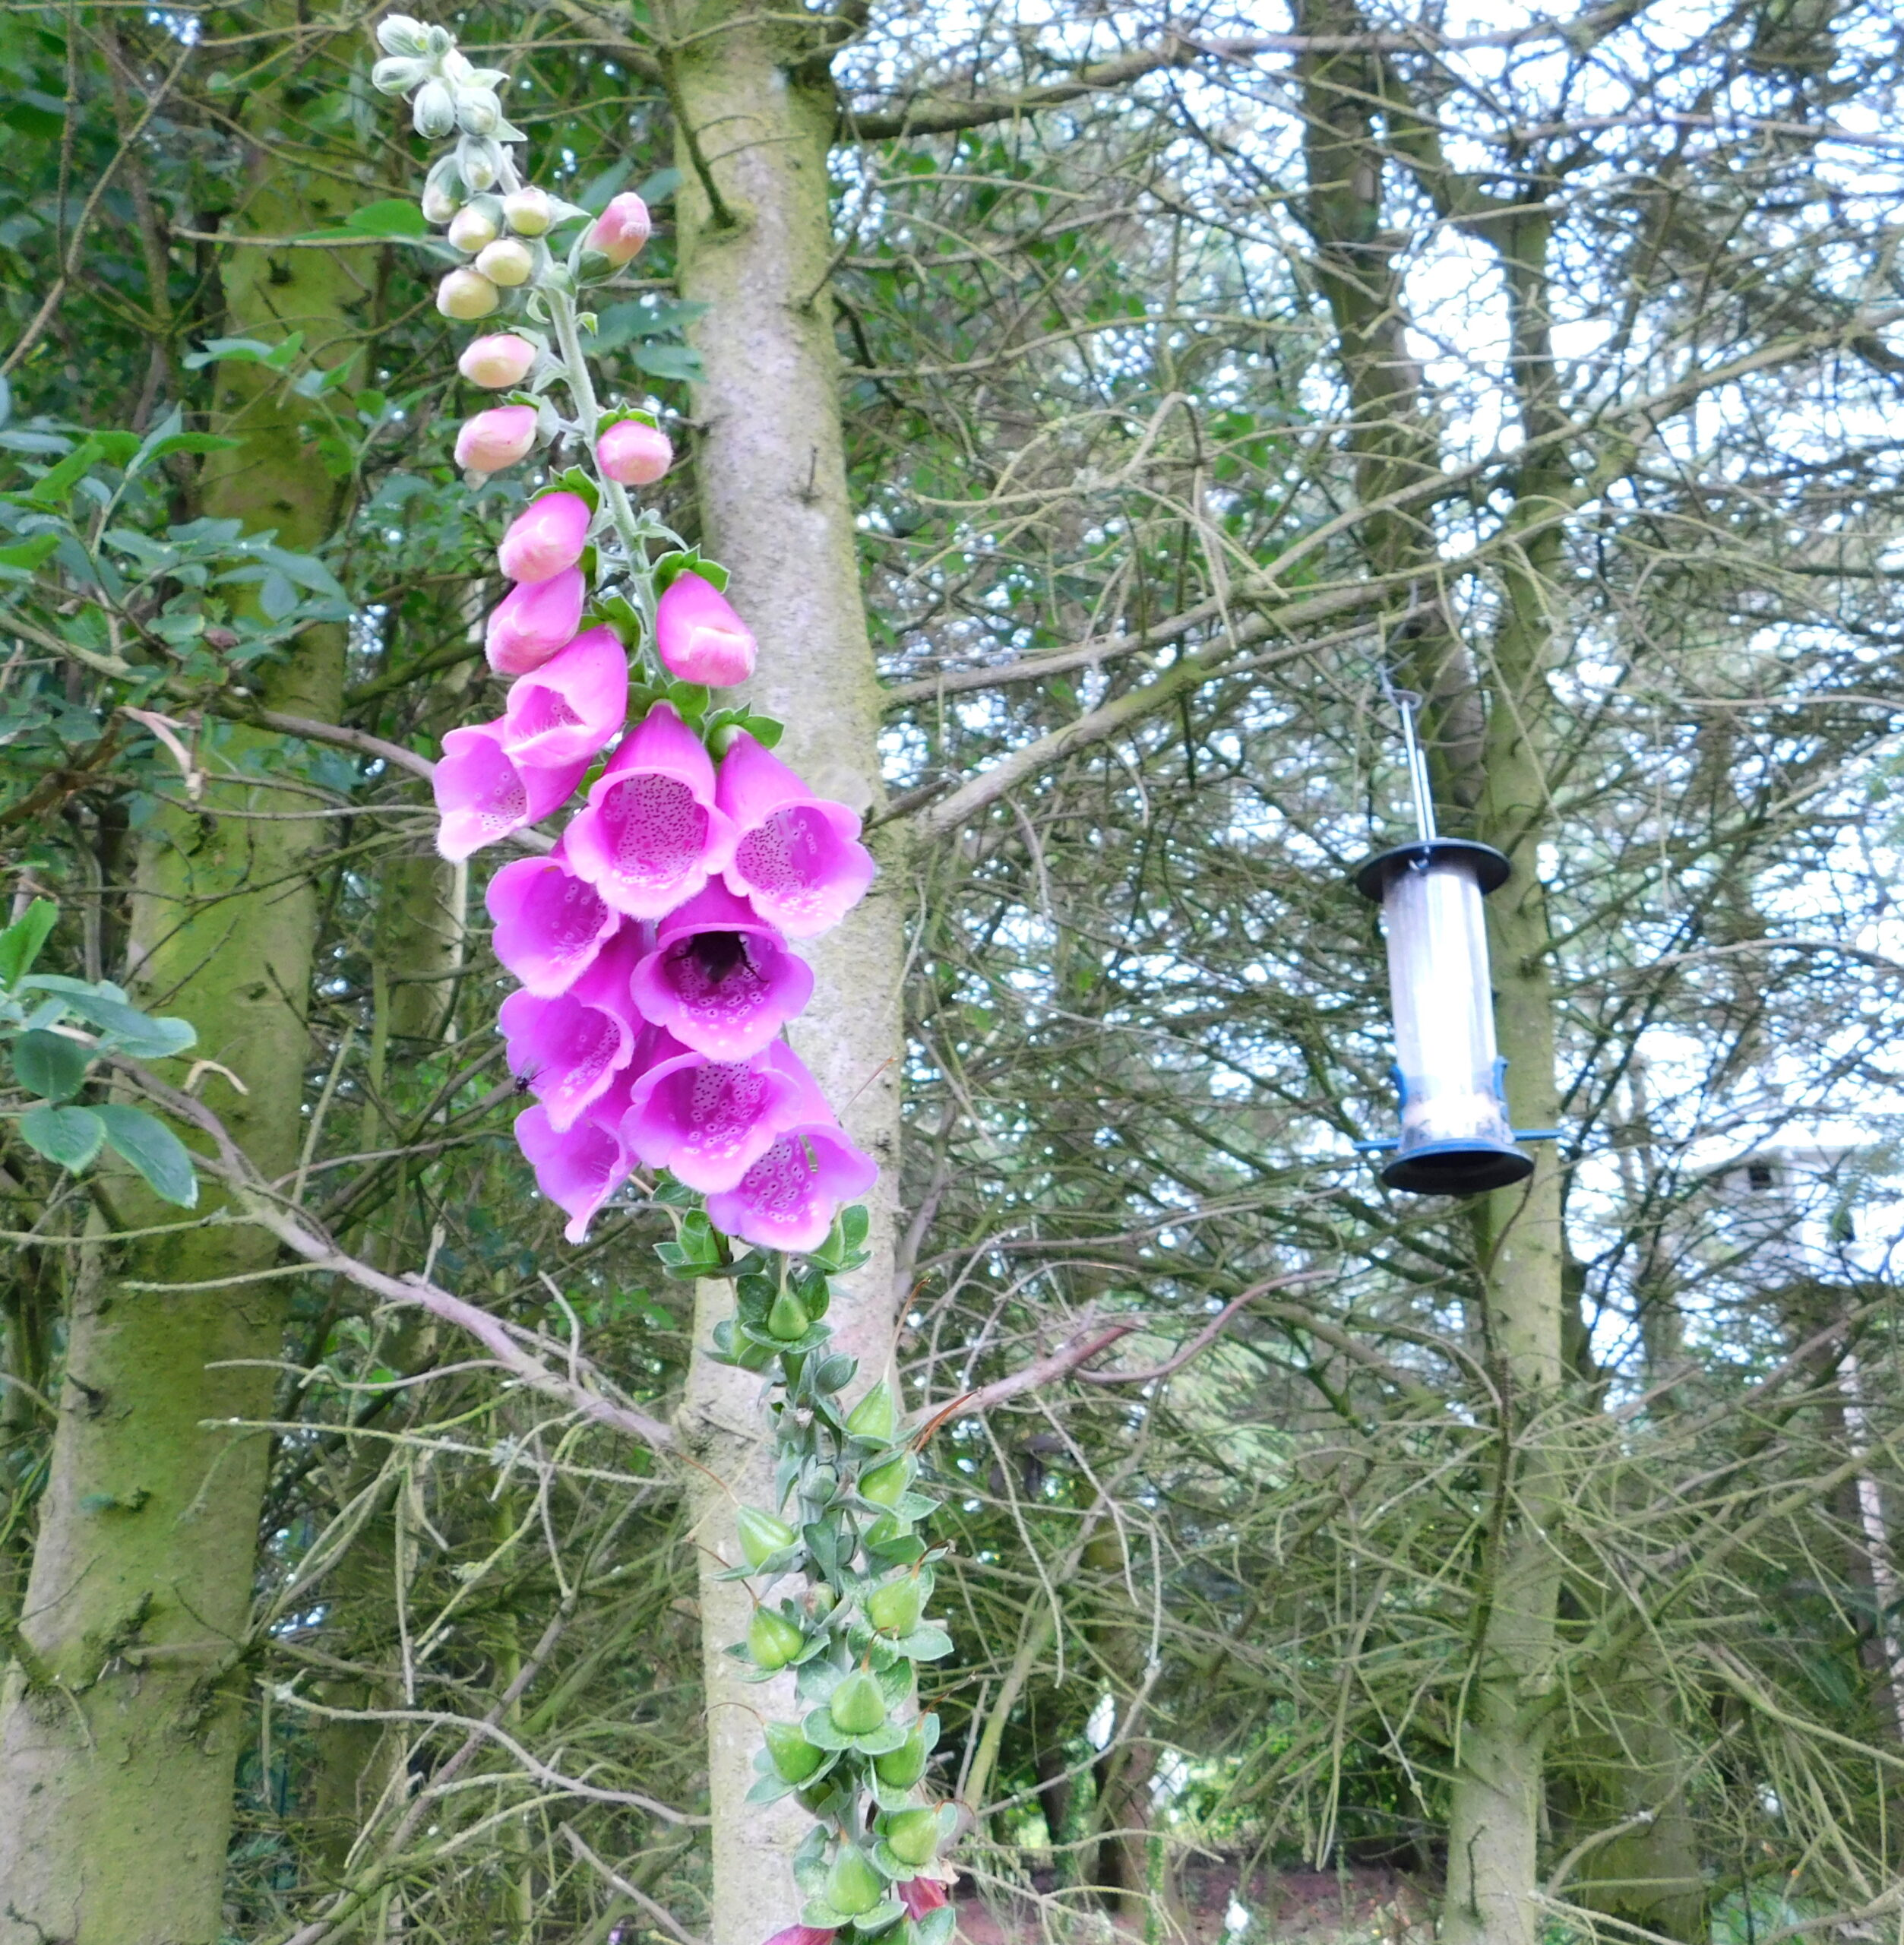 Foxgloves can be poisonous for pets